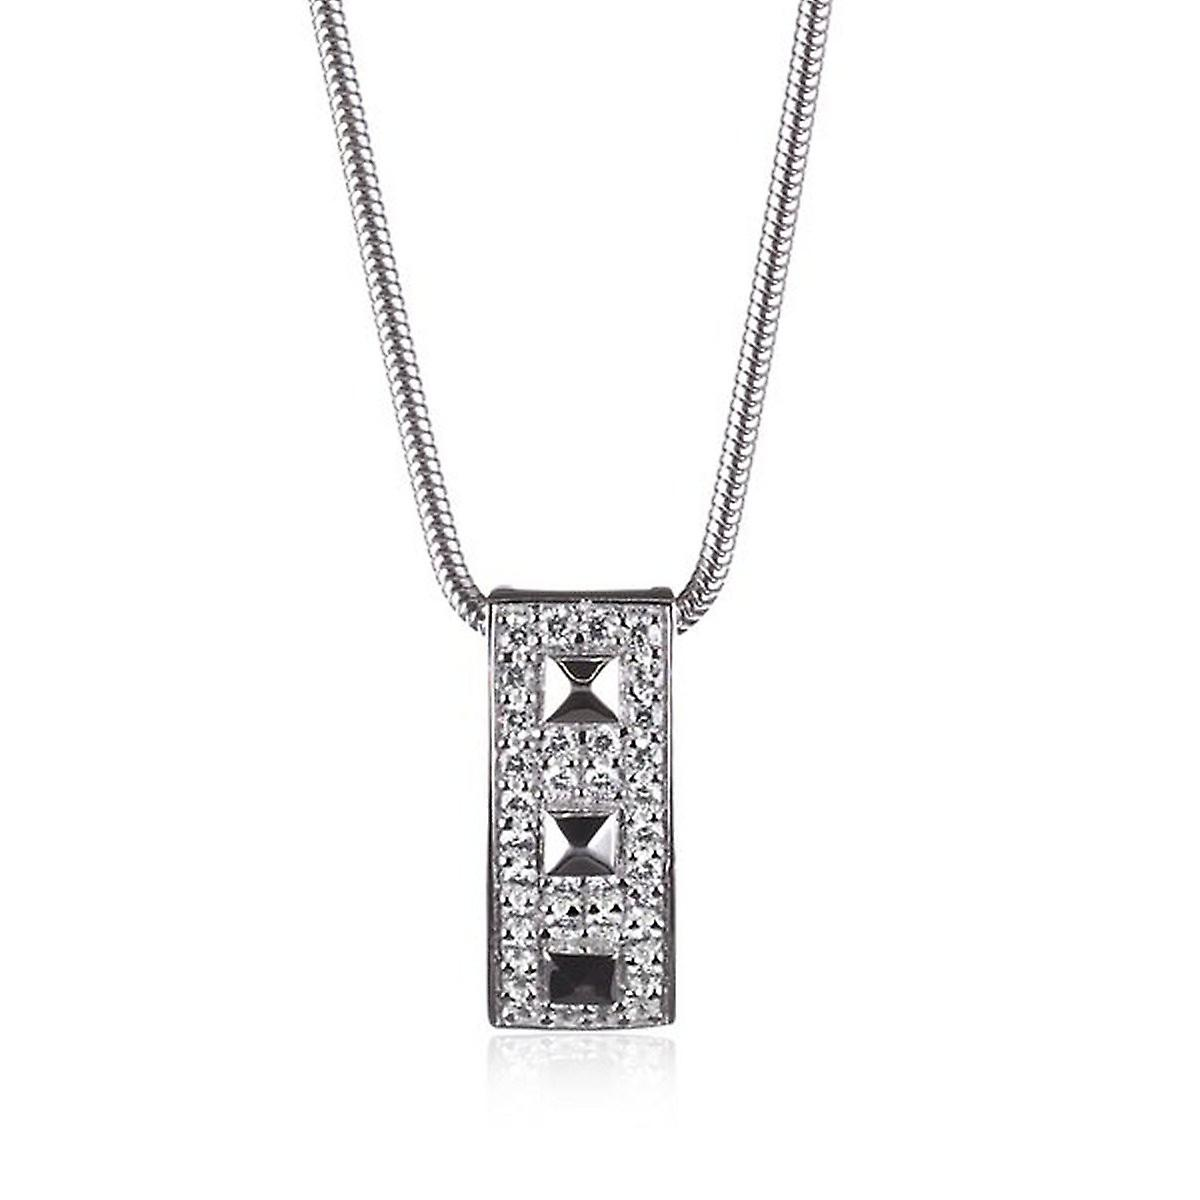 s.Oliver Jewel Damen Kette Collier Silber Zyrkonia SO632/1 - 385718